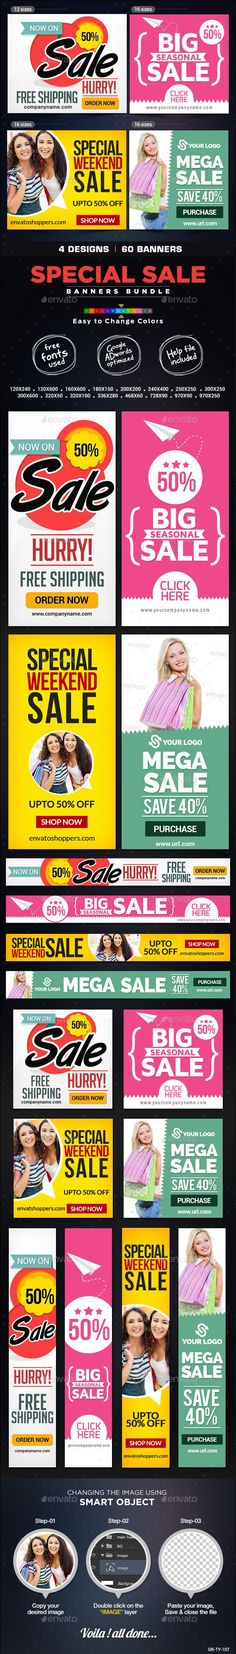 Special #Sale Banner Bundle - 4 Sets Template PSD   Buy and Download: graphicriver.net/...